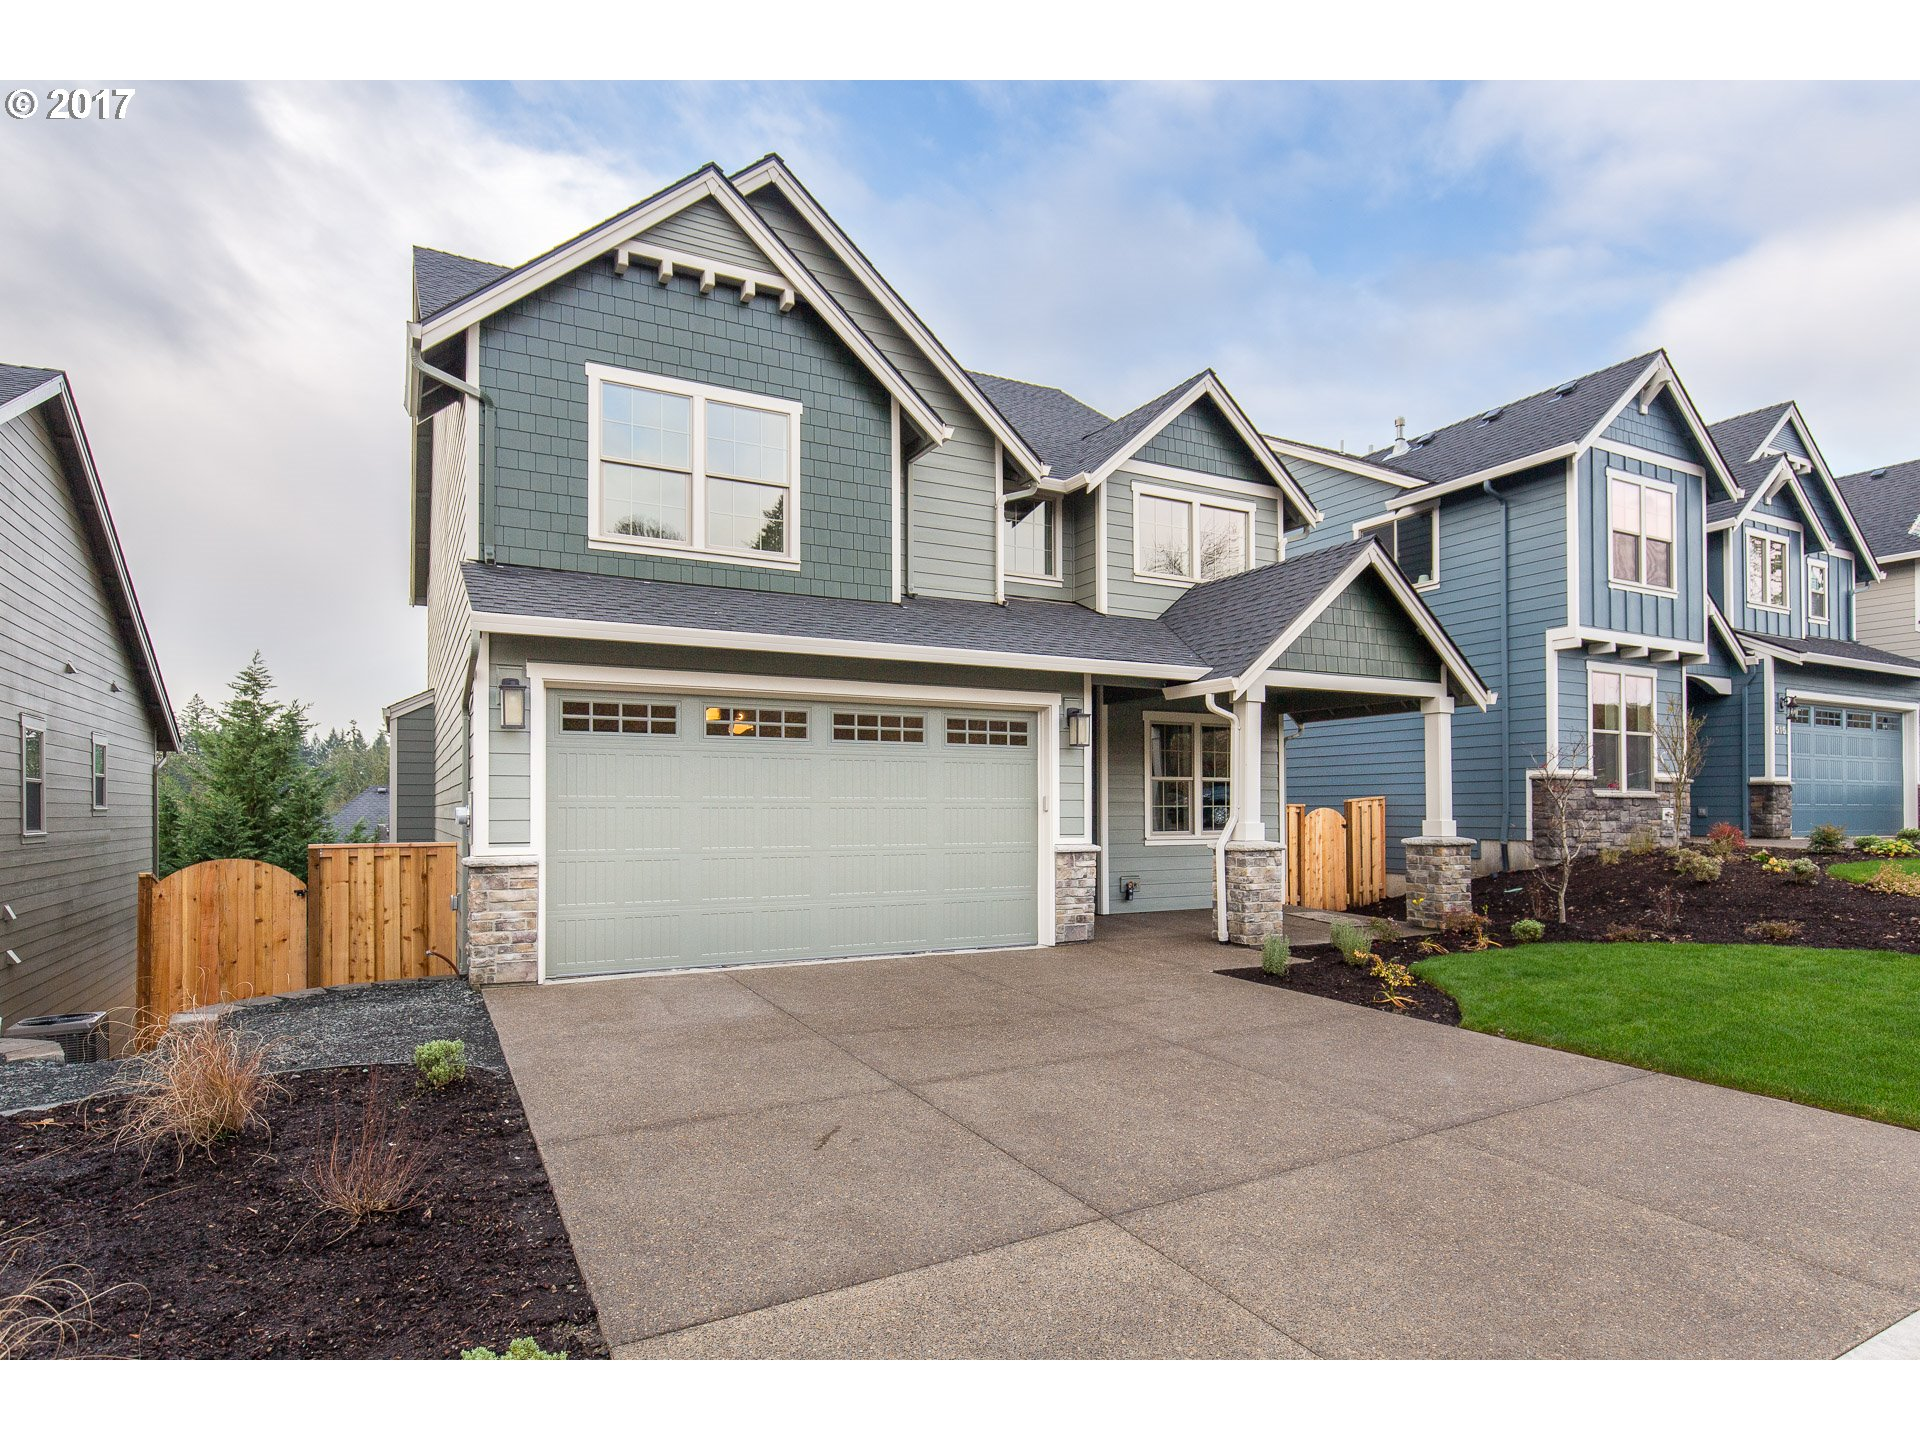 509 EAGLE ST, Newberg OR 97132